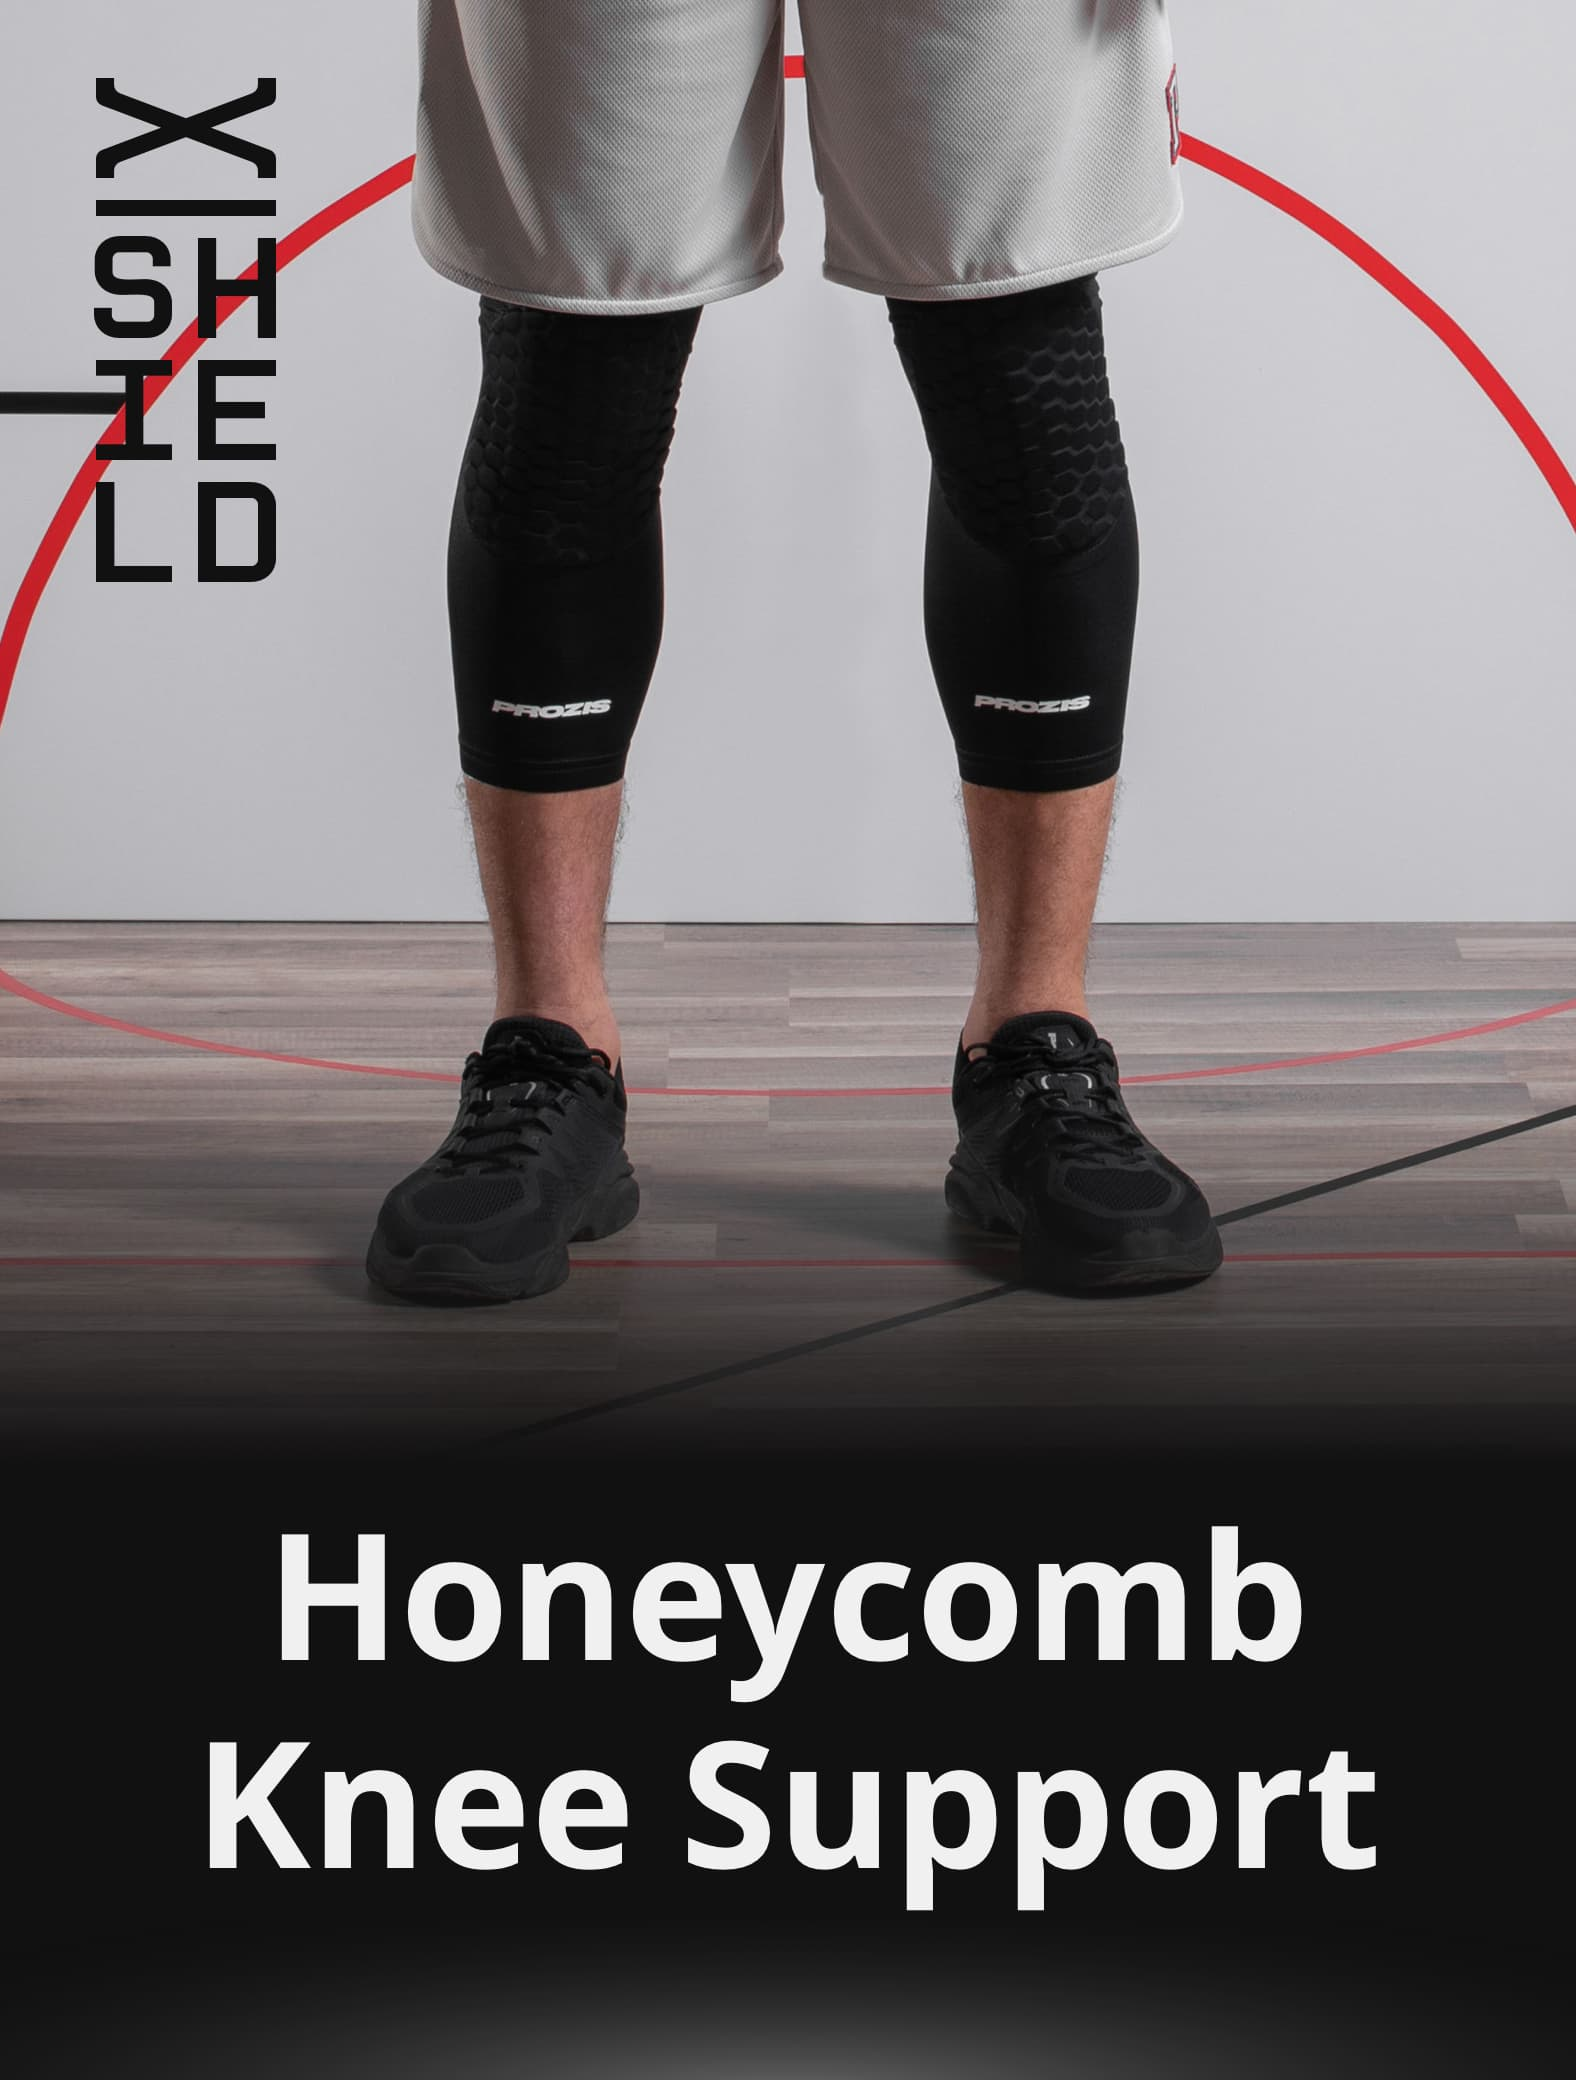 X-Shield Knee Support